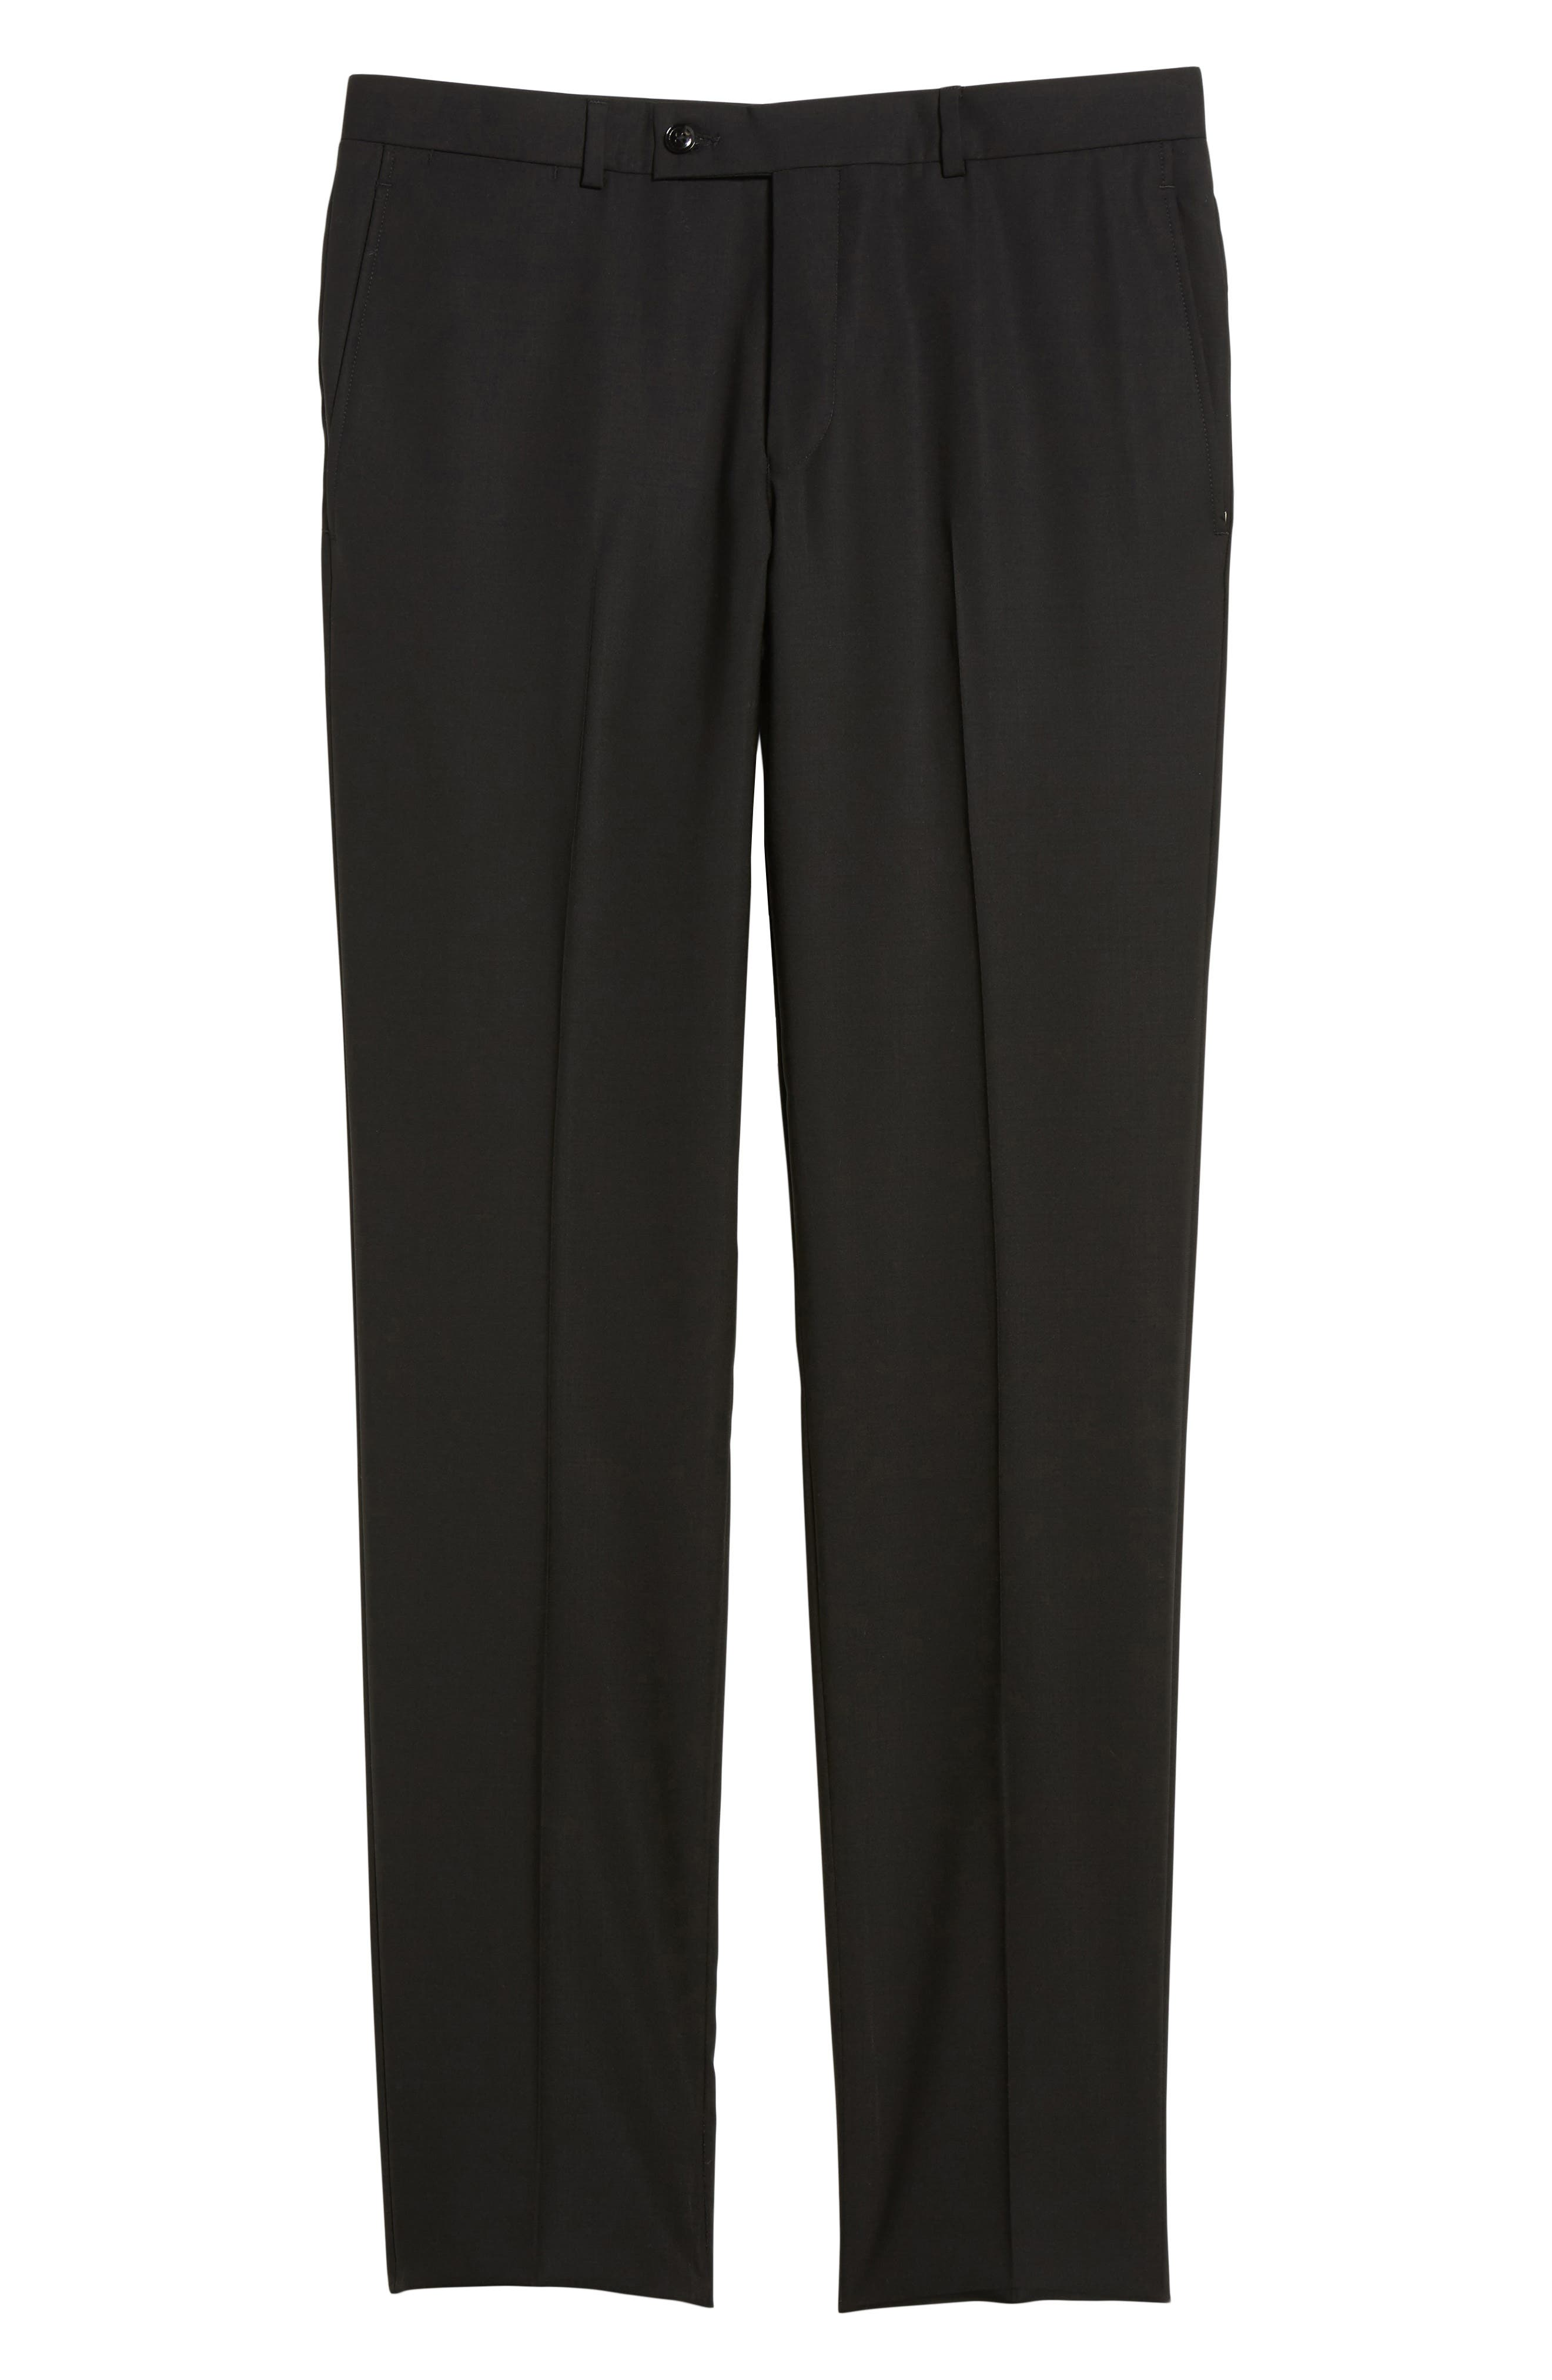 TED BAKER LONDON,                             Jefferson Flat Front Solid Wool Trousers,                             Alternate thumbnail 6, color,                             BLACK